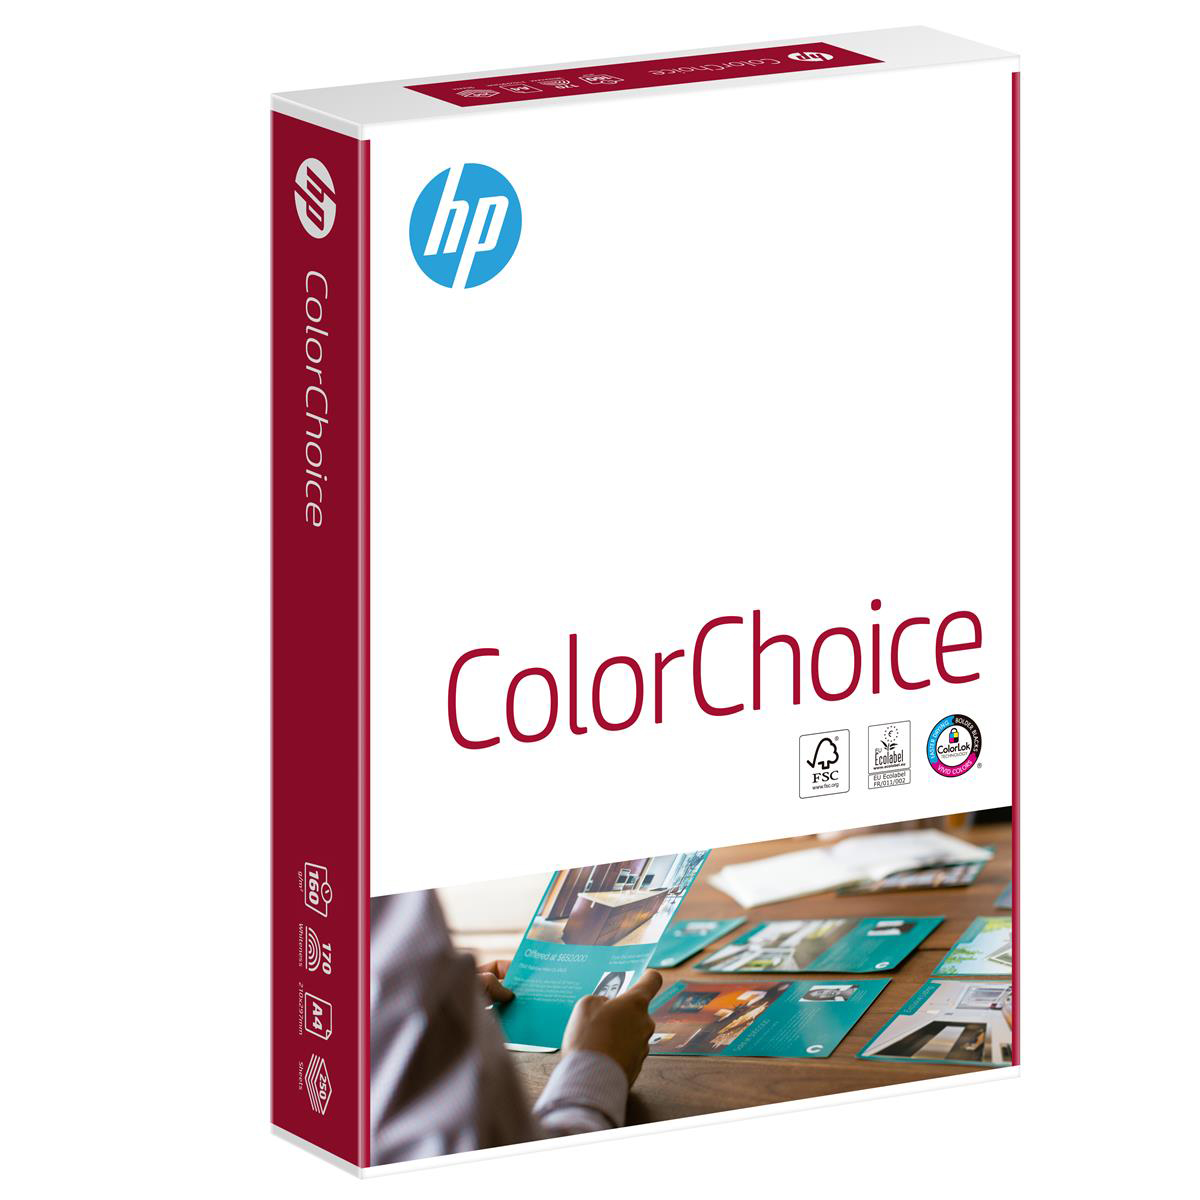 Hewlett Packard HP Color Choice Card Smooth FSC Colorlok 160gsm A4 White Ref 94298 [250 Sheets]